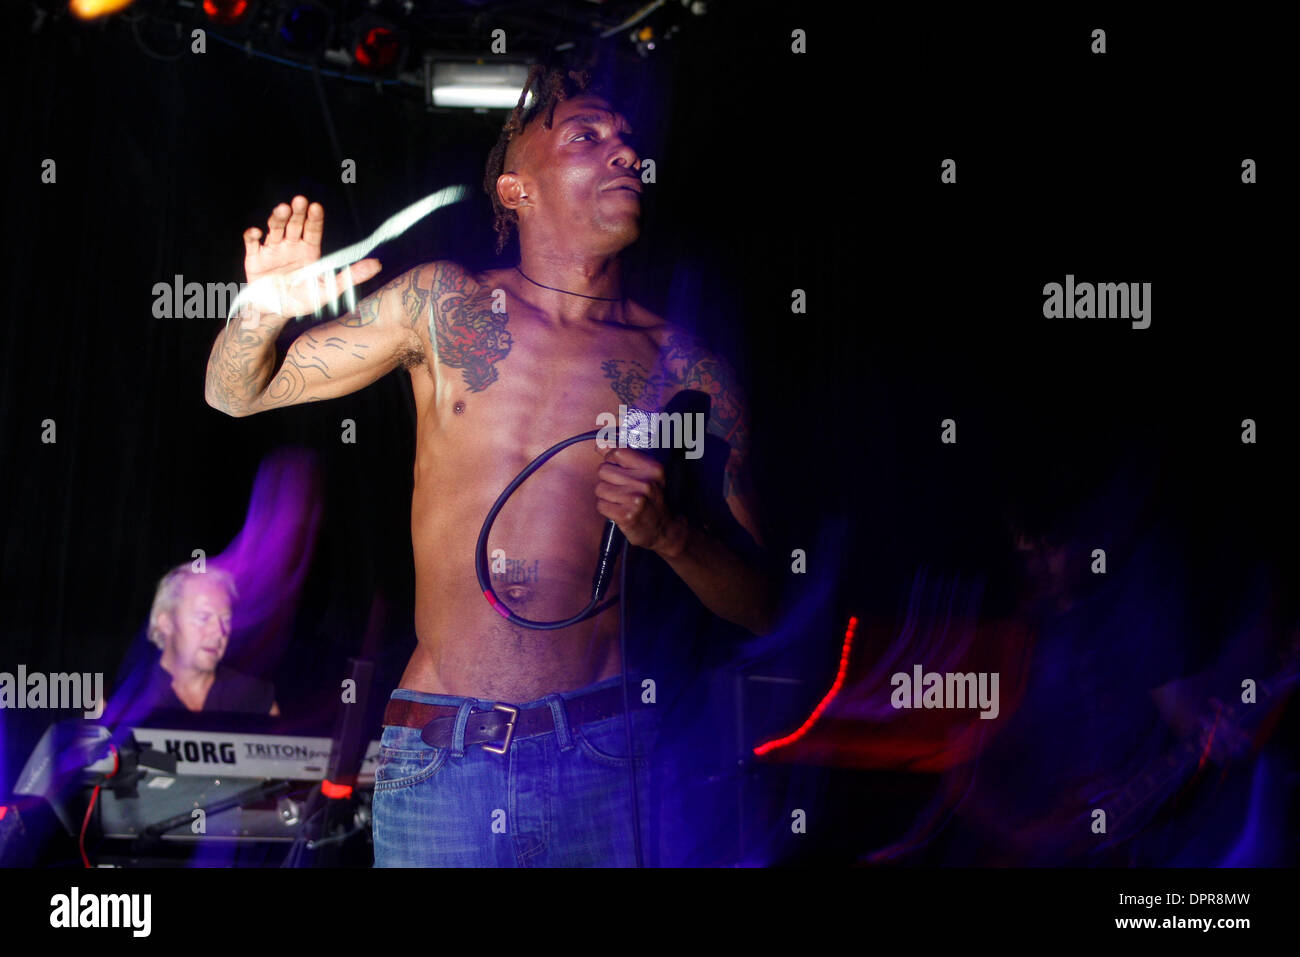 Apr 05, 2009 - New York, New York, USA - Tricky performing at The Fillmore at Irving Plaza. (Credit Image: © Aviv Small/ZUMA Press) - Stock Image